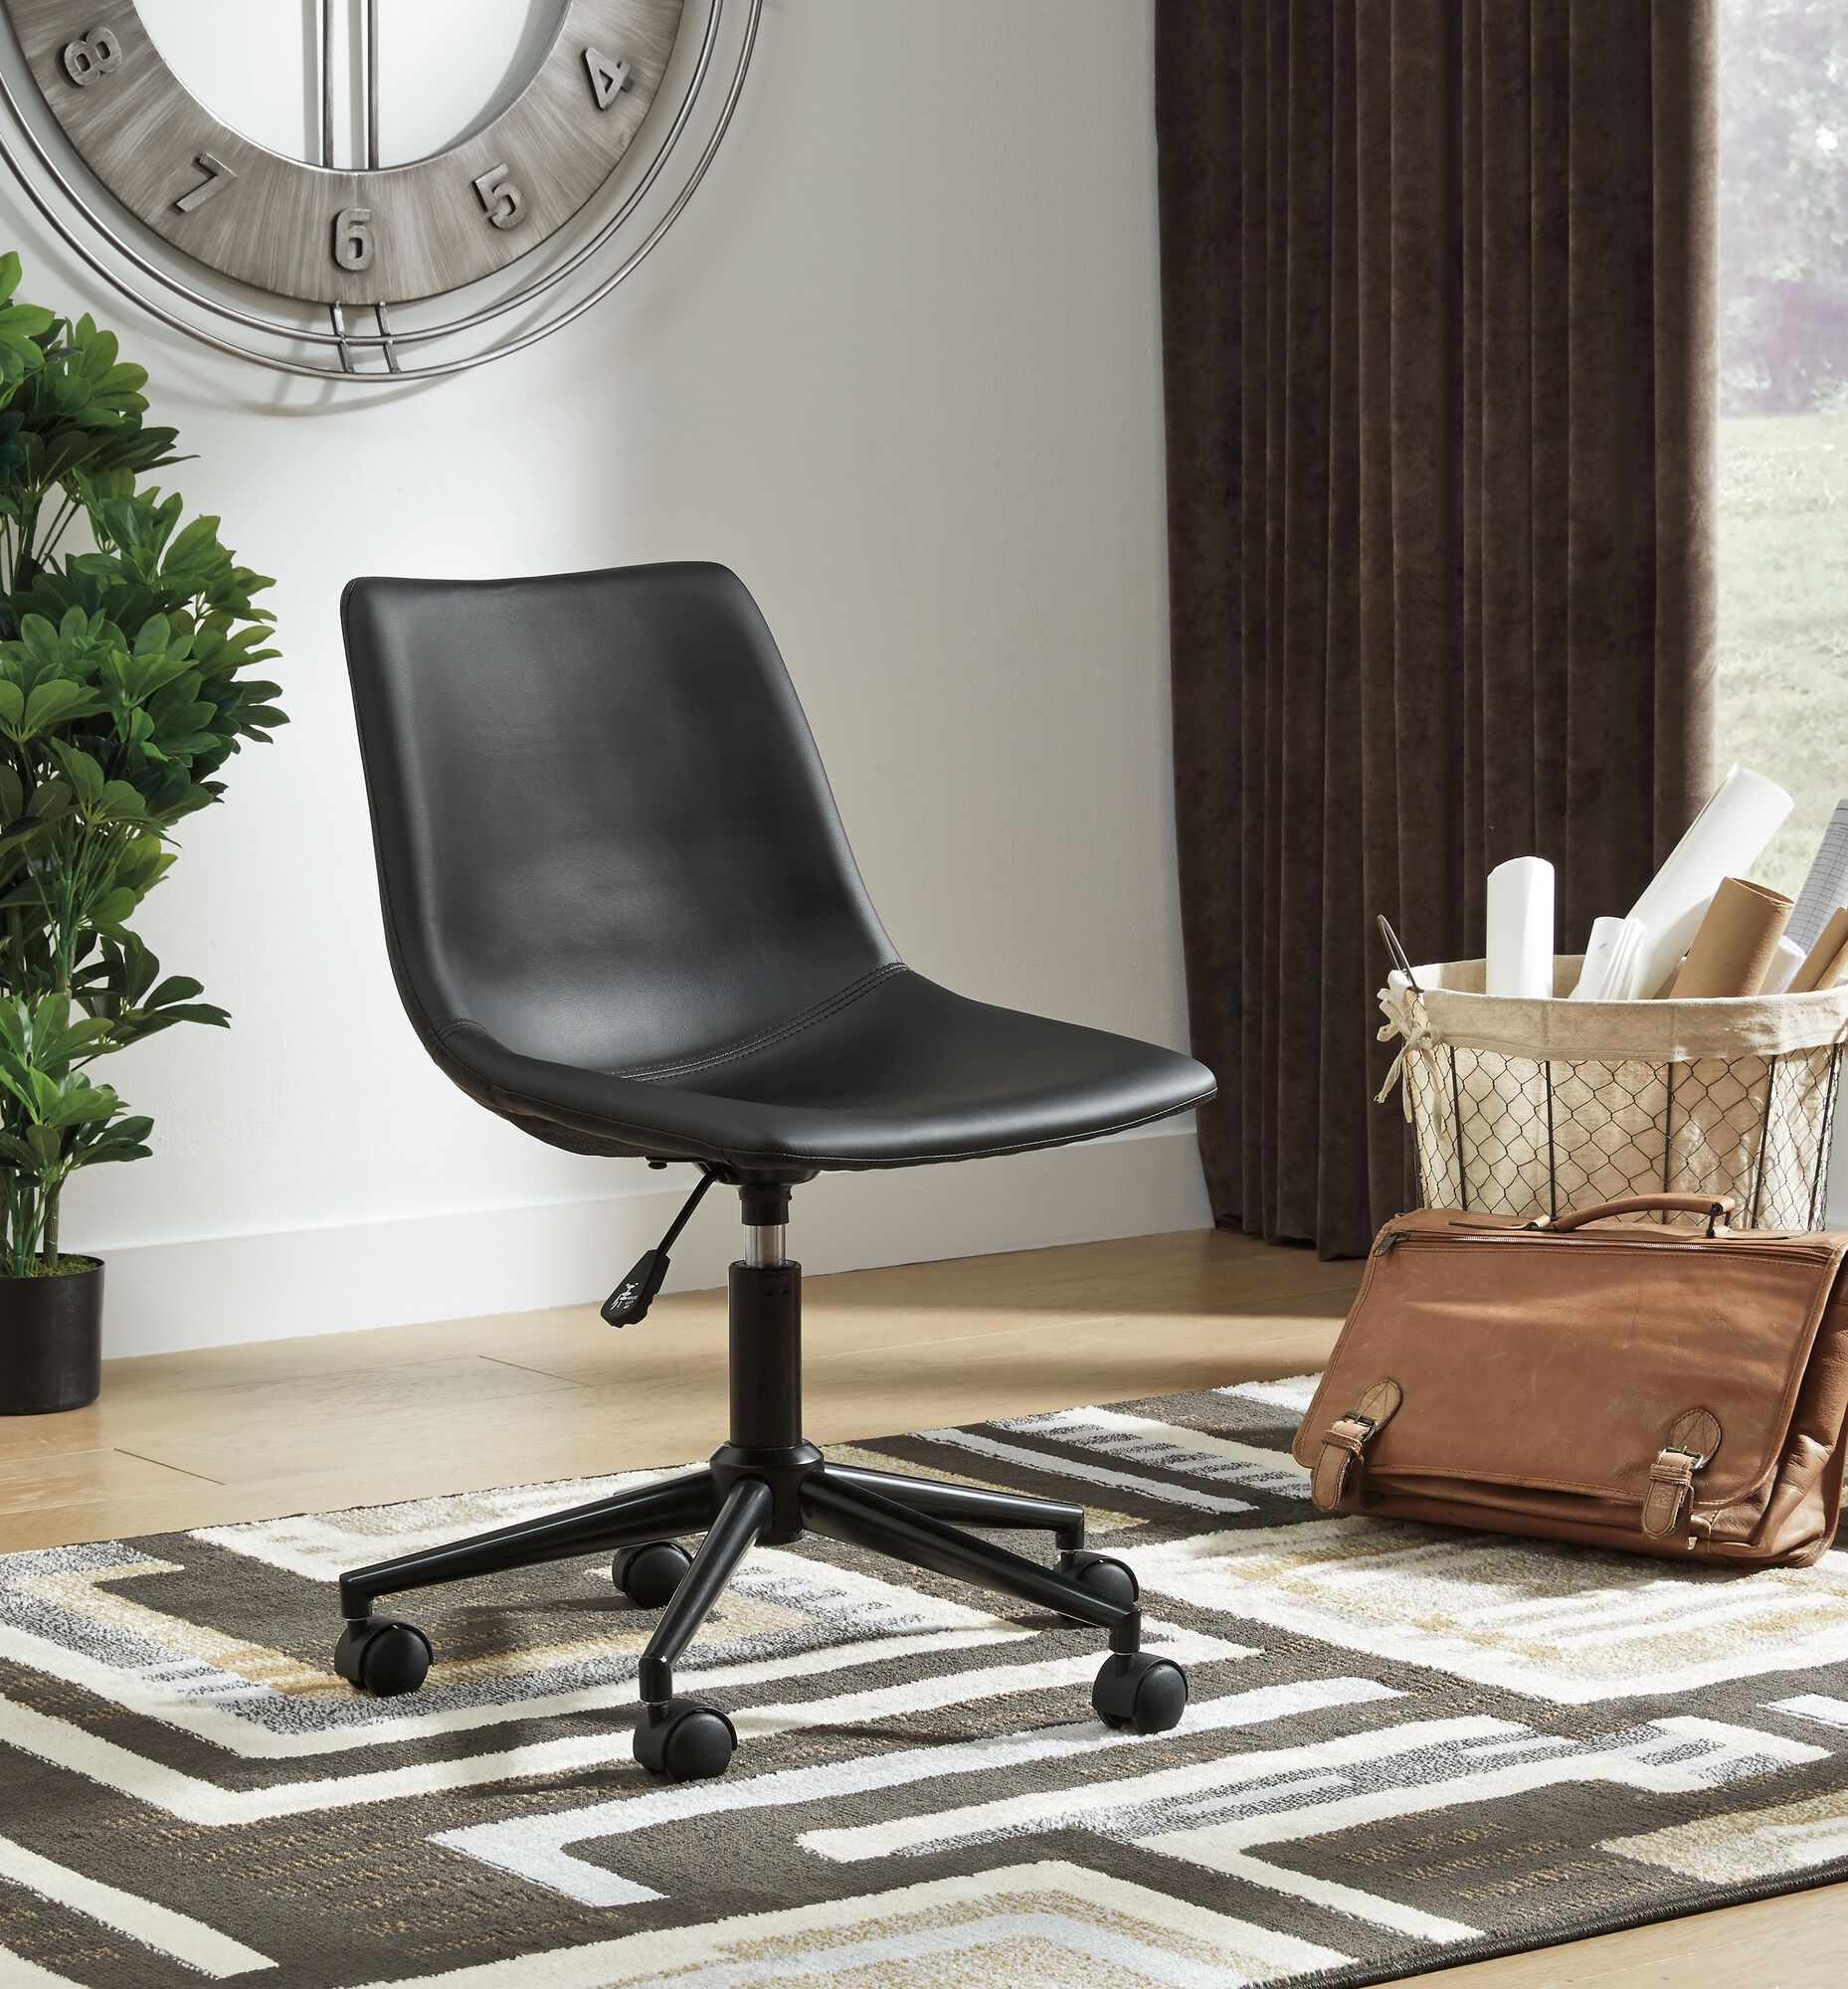 18 Casual Swivel Desk Chair In Black Mathis Brothers Furniture